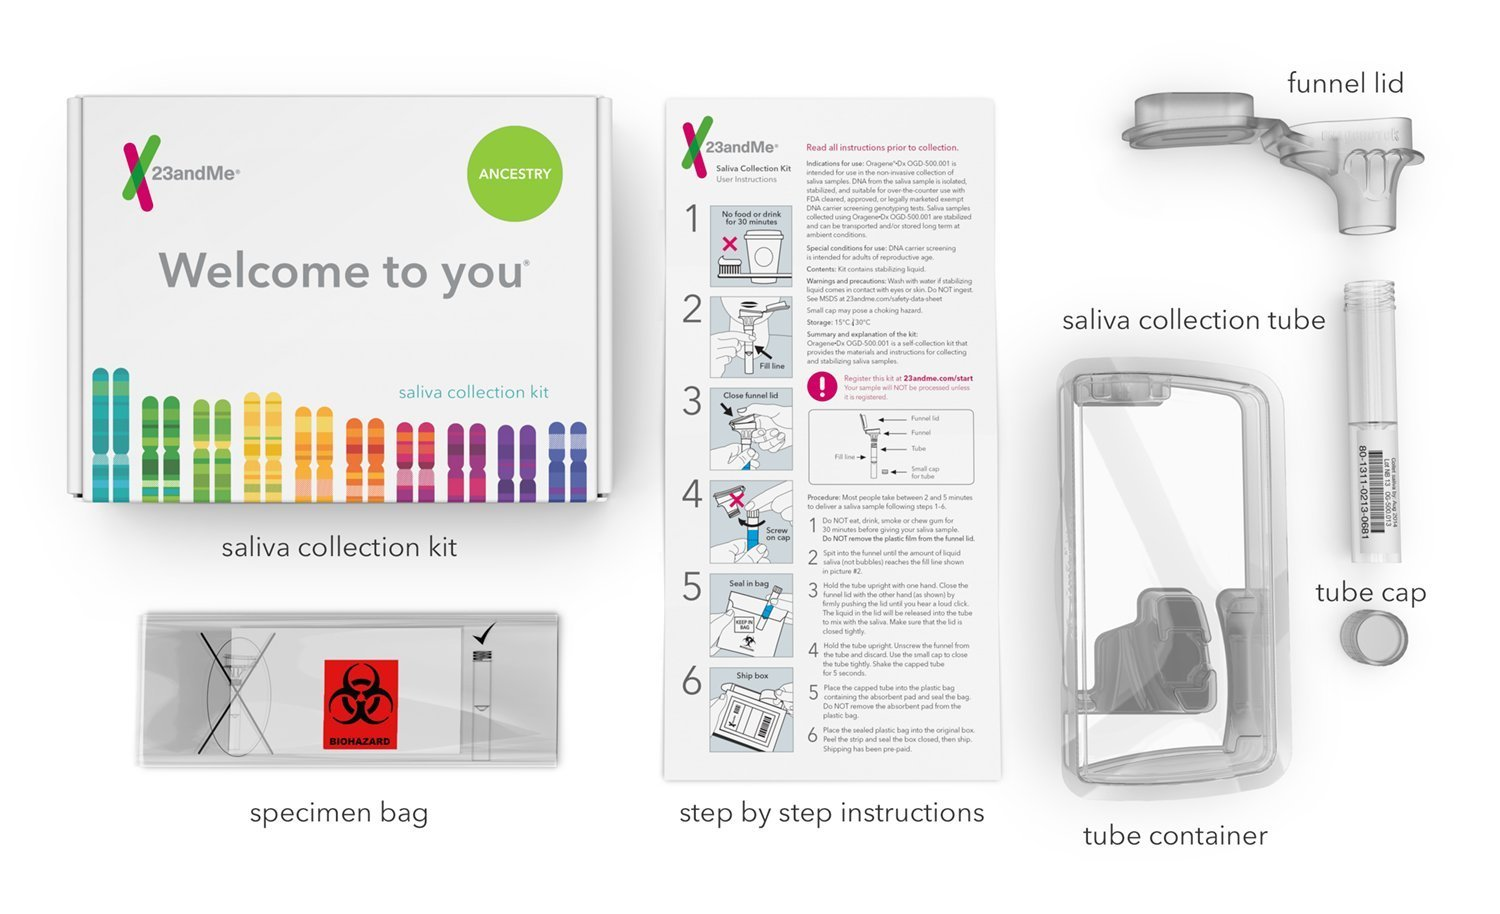 Top 4 Best DNA Ancestry Test Kit In 2019 - [Reviews & Infographic]